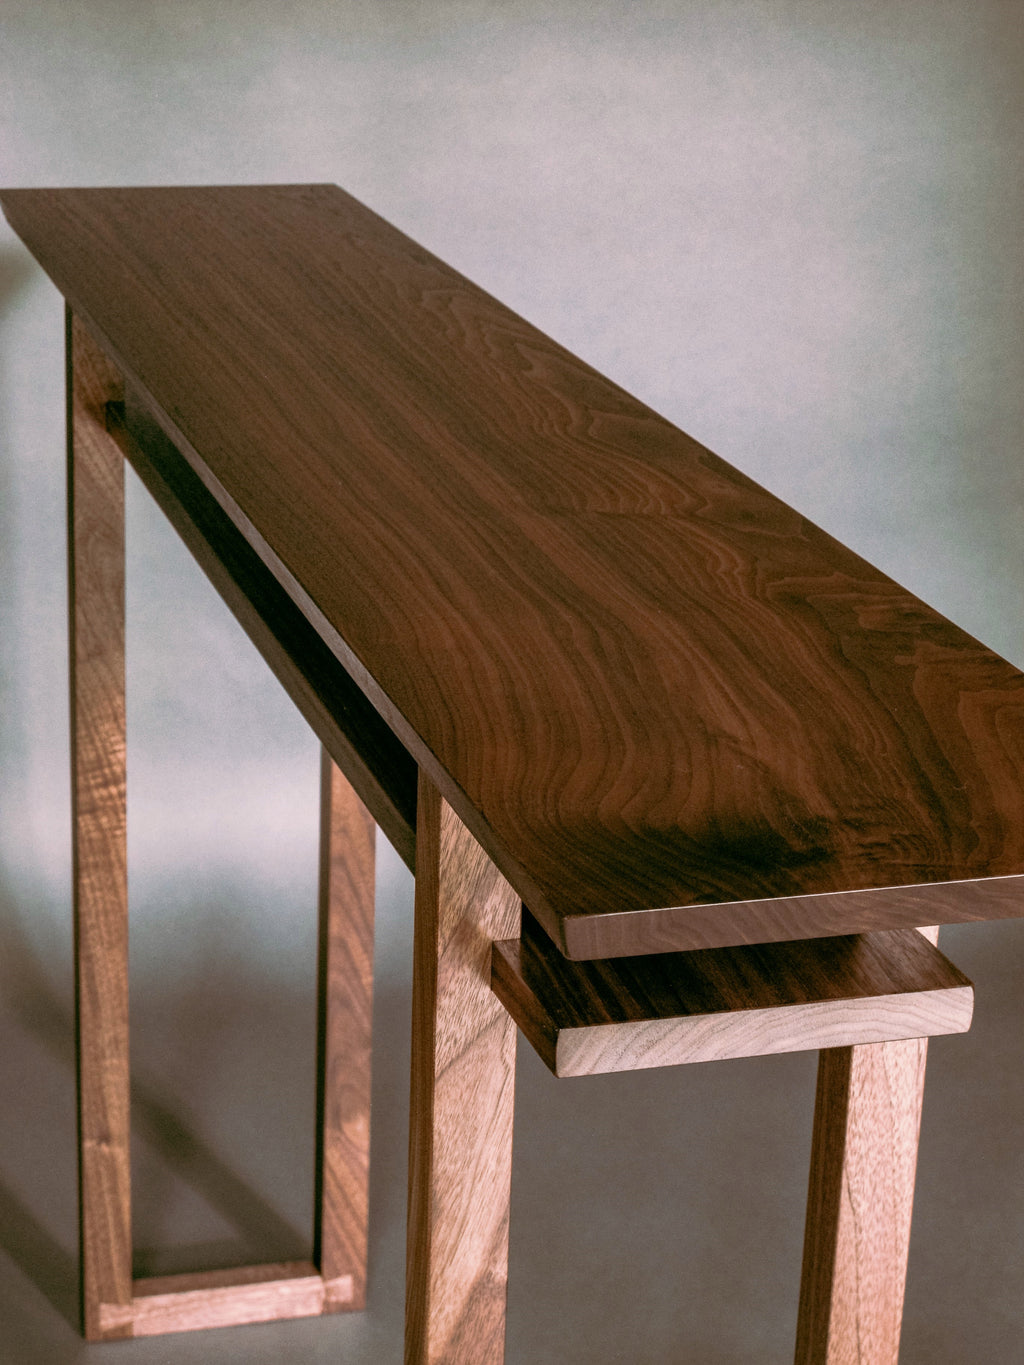 solid walnut console table - artistic hand-crafted wood furniture